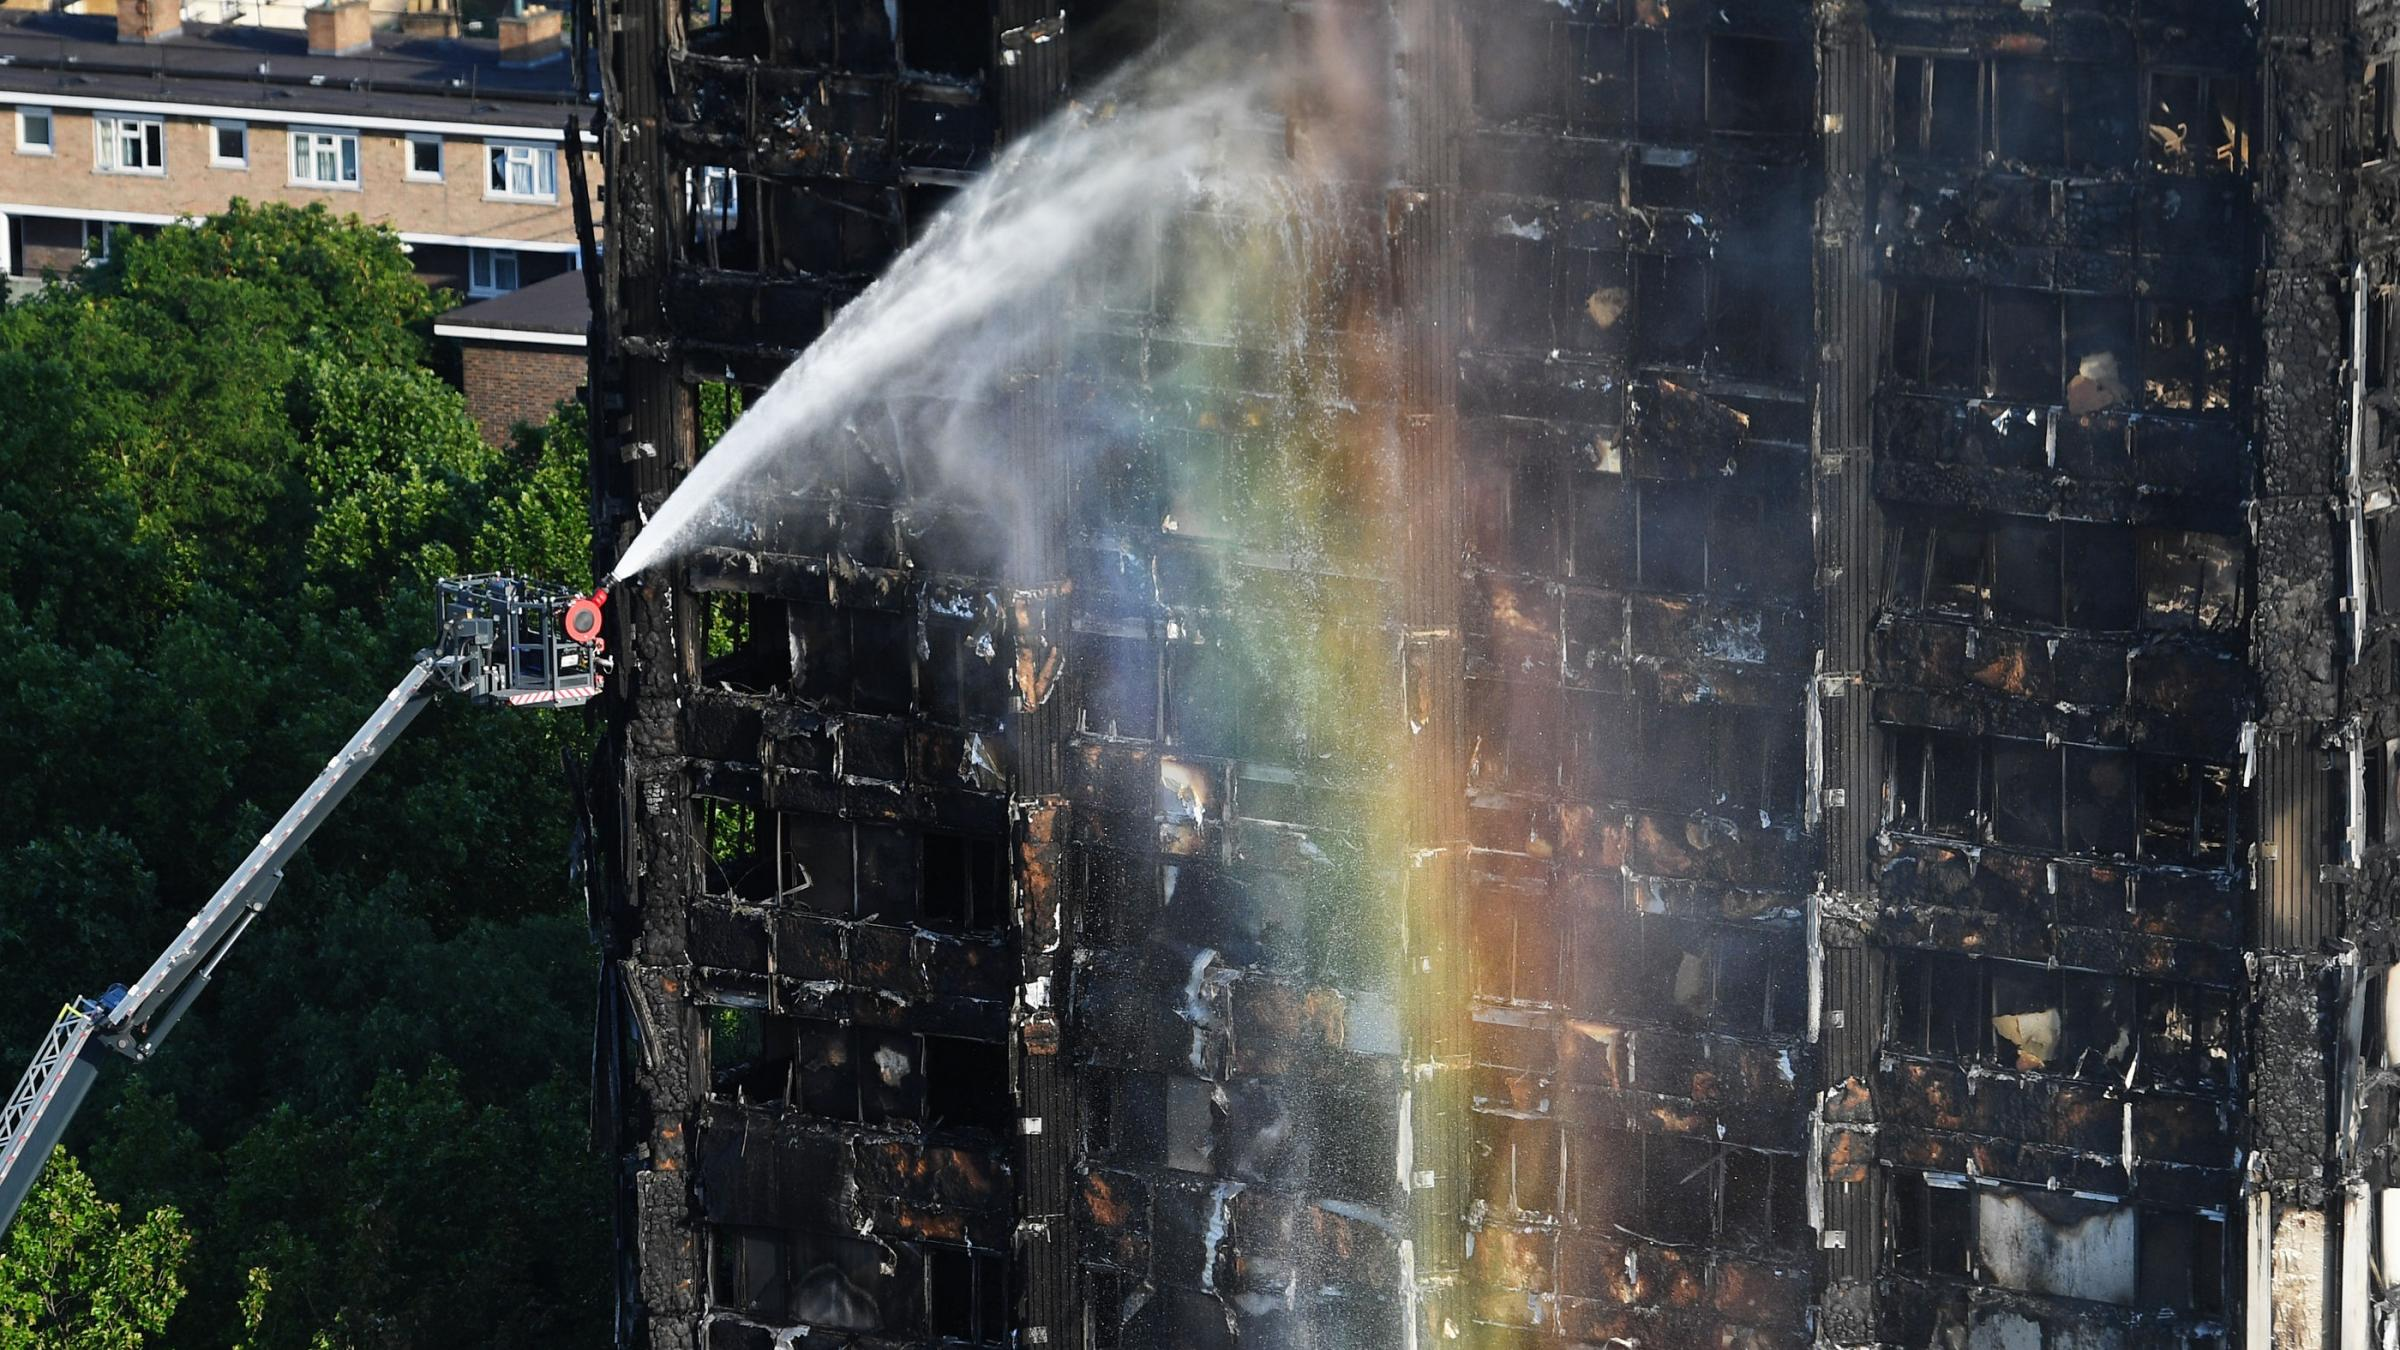 Mayor Sadiq Khan confronted by irate Londoners after fire